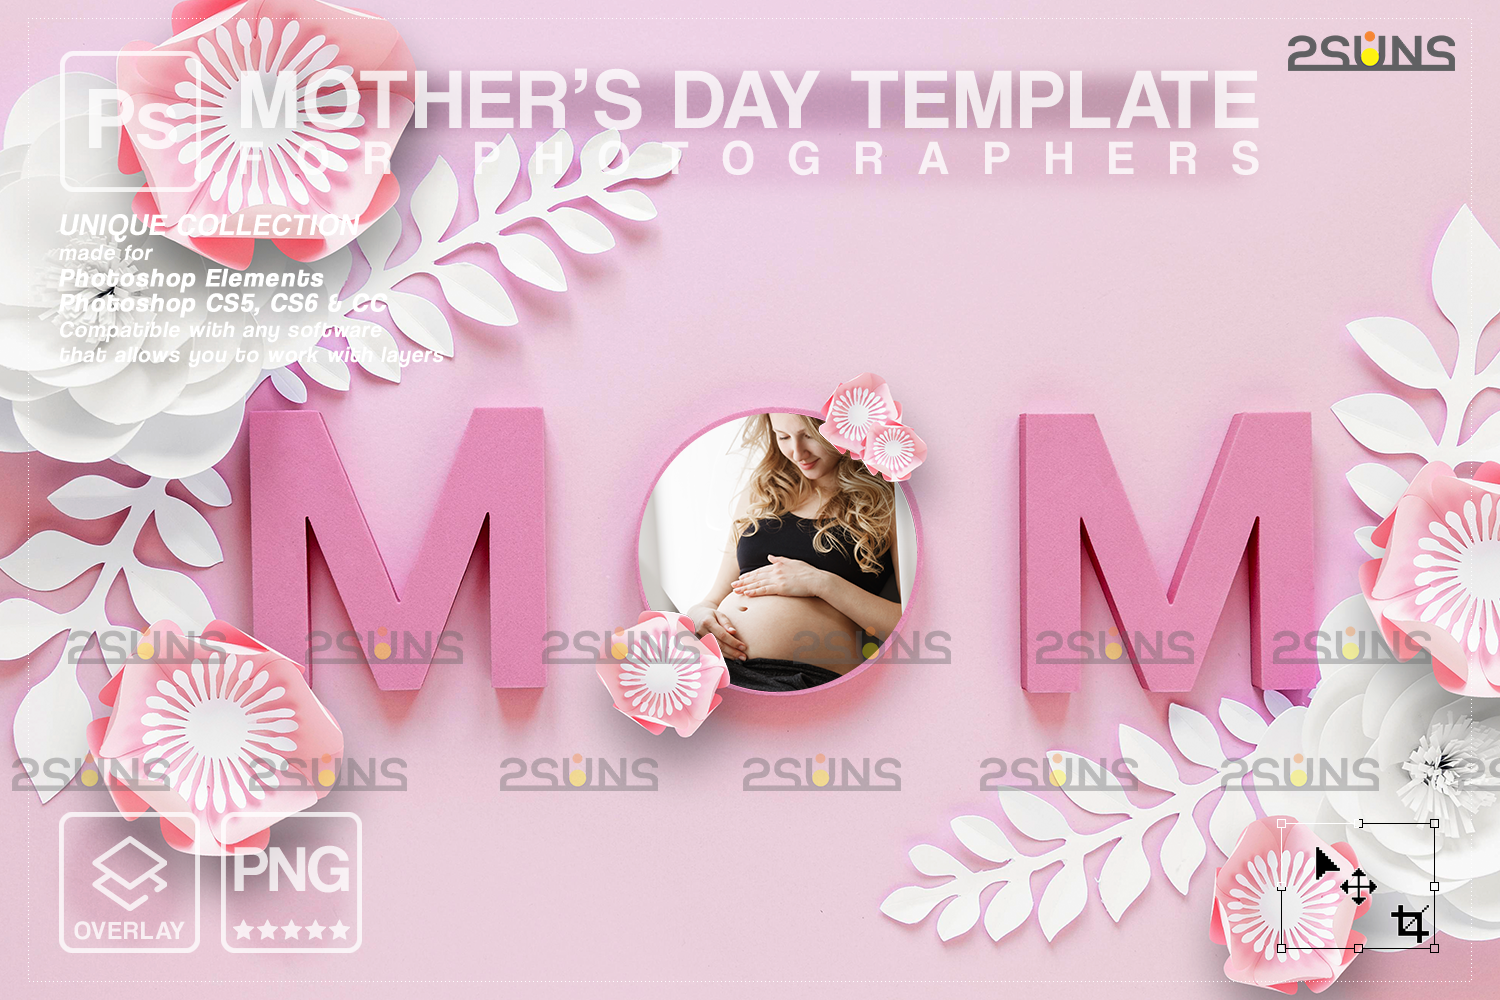 Mothers day cards template & Mothers day overlay: Backdrop flower watercolor frames, Mothers day - 002 103 -